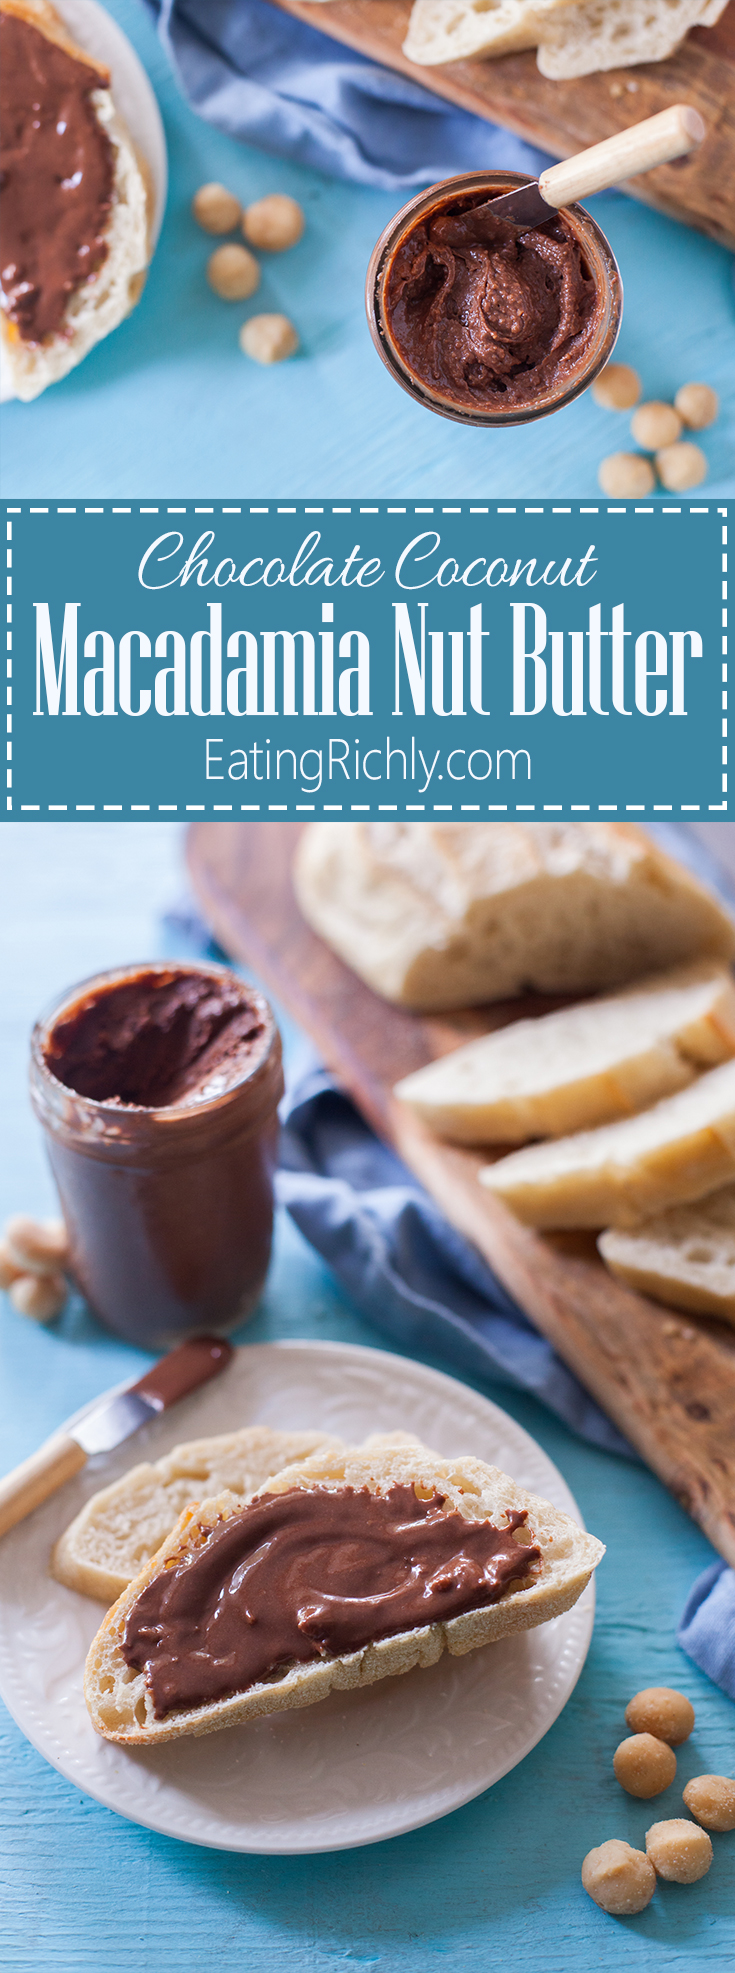 This coconut chocolate macadamia nut butter is heaven in a jar. Just four ingredients & vegan, dairy free, & paleo. You will not believe how good it is! From EatingRichly.com